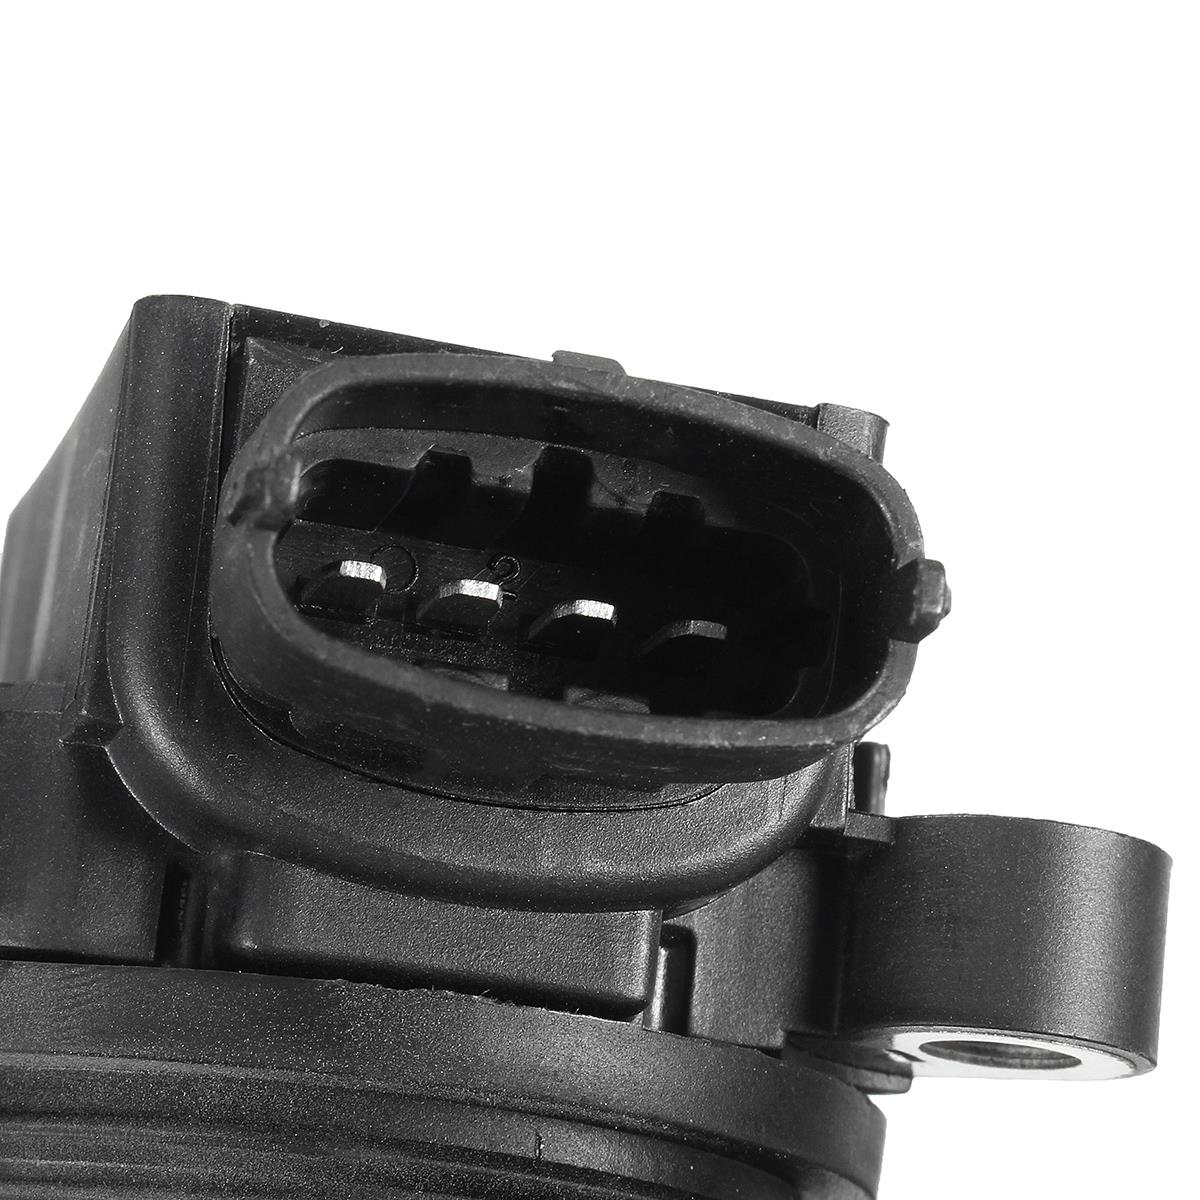 Image 4 - New Black Ignition Coil For Volvo 1999 2013 XC70 XC90 C70 S60 UF341 9125601 Polybutylene Terephthalate-in Ignition Coil from Automobiles & Motorcycles